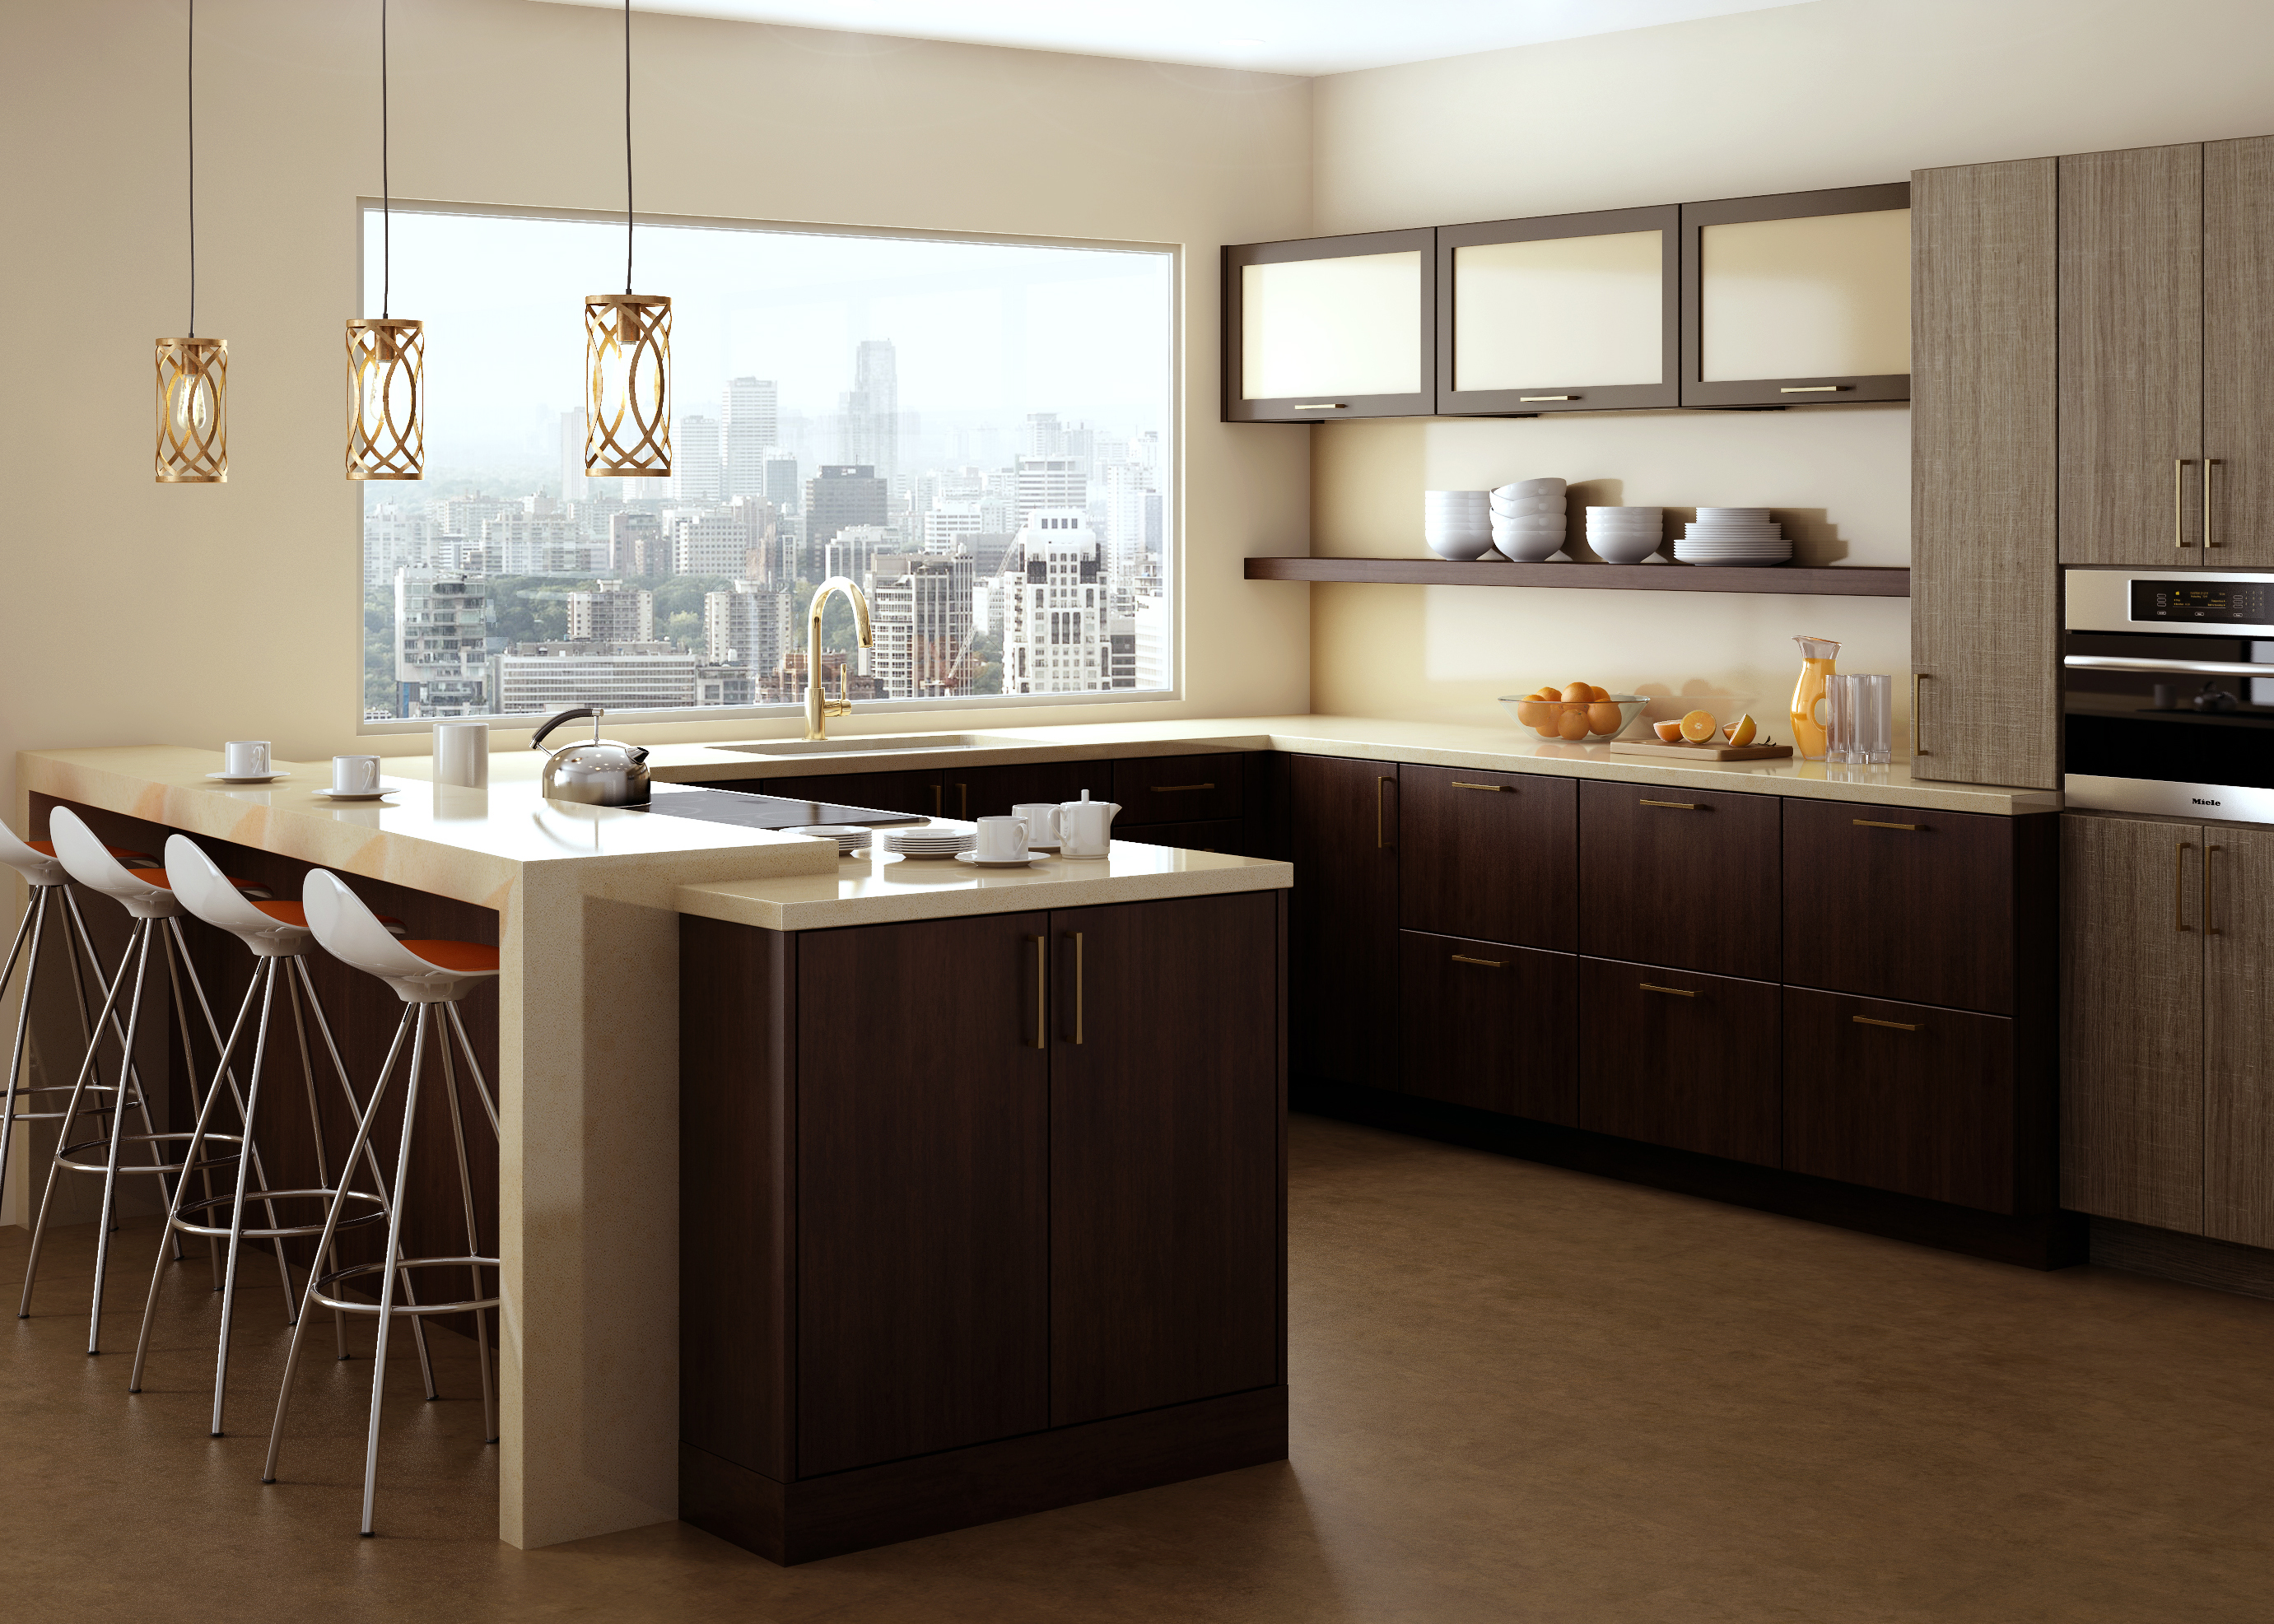 A city loft appartment with a stunning view and modern cabinets in a sleek and contemporary kitchen design. Featuring Dura Supreme frameless cabinets.